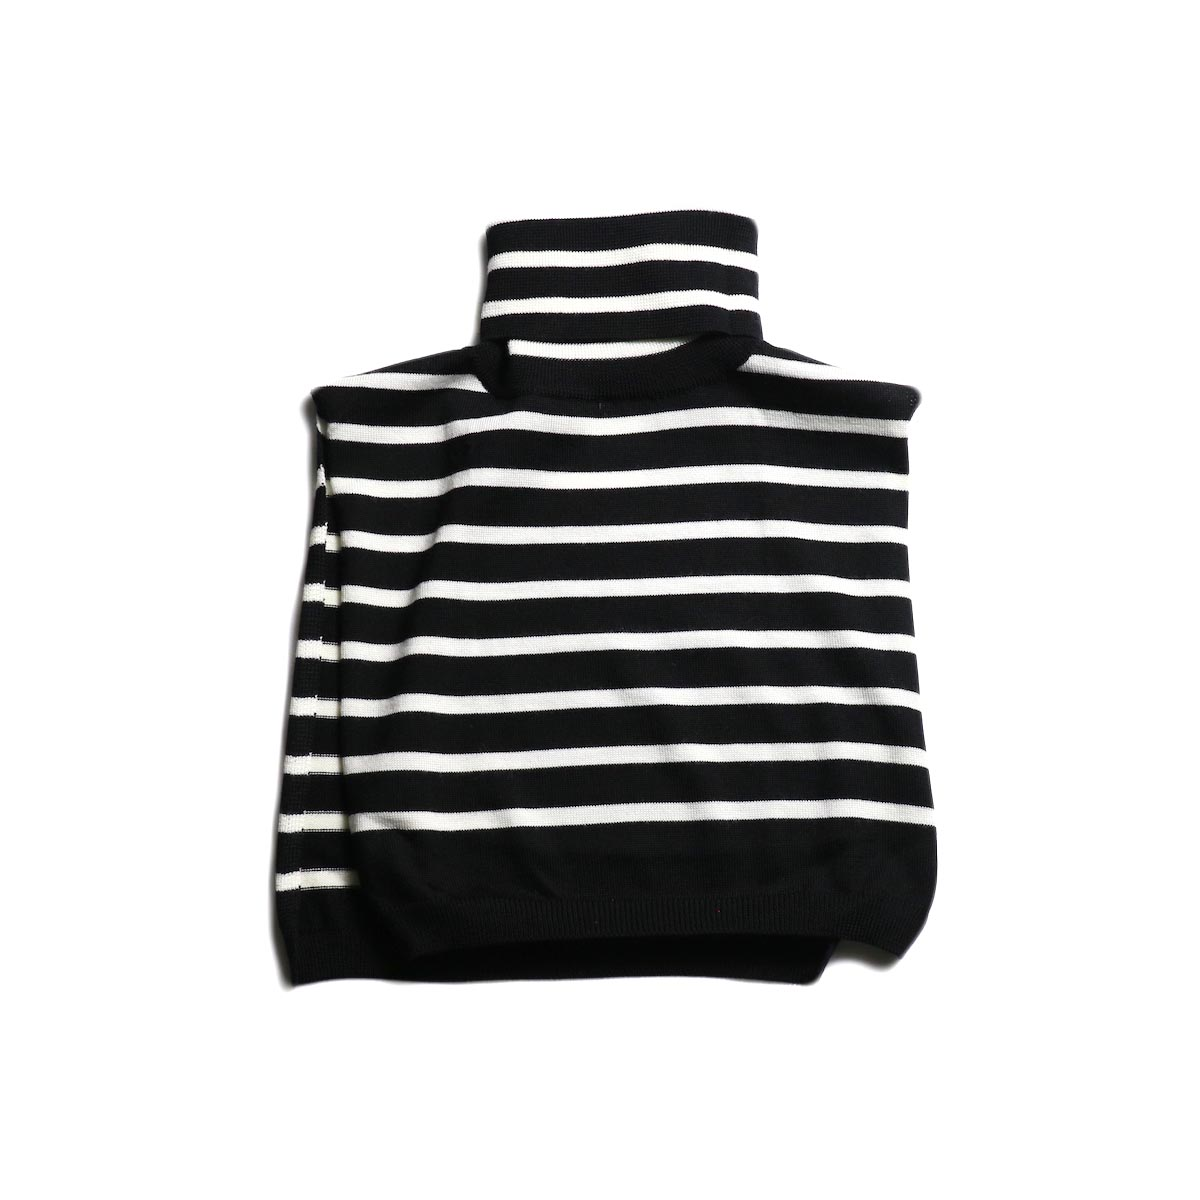 The Soloist / sk.0024AW19 turtleneck dickie. -Black × White 正面